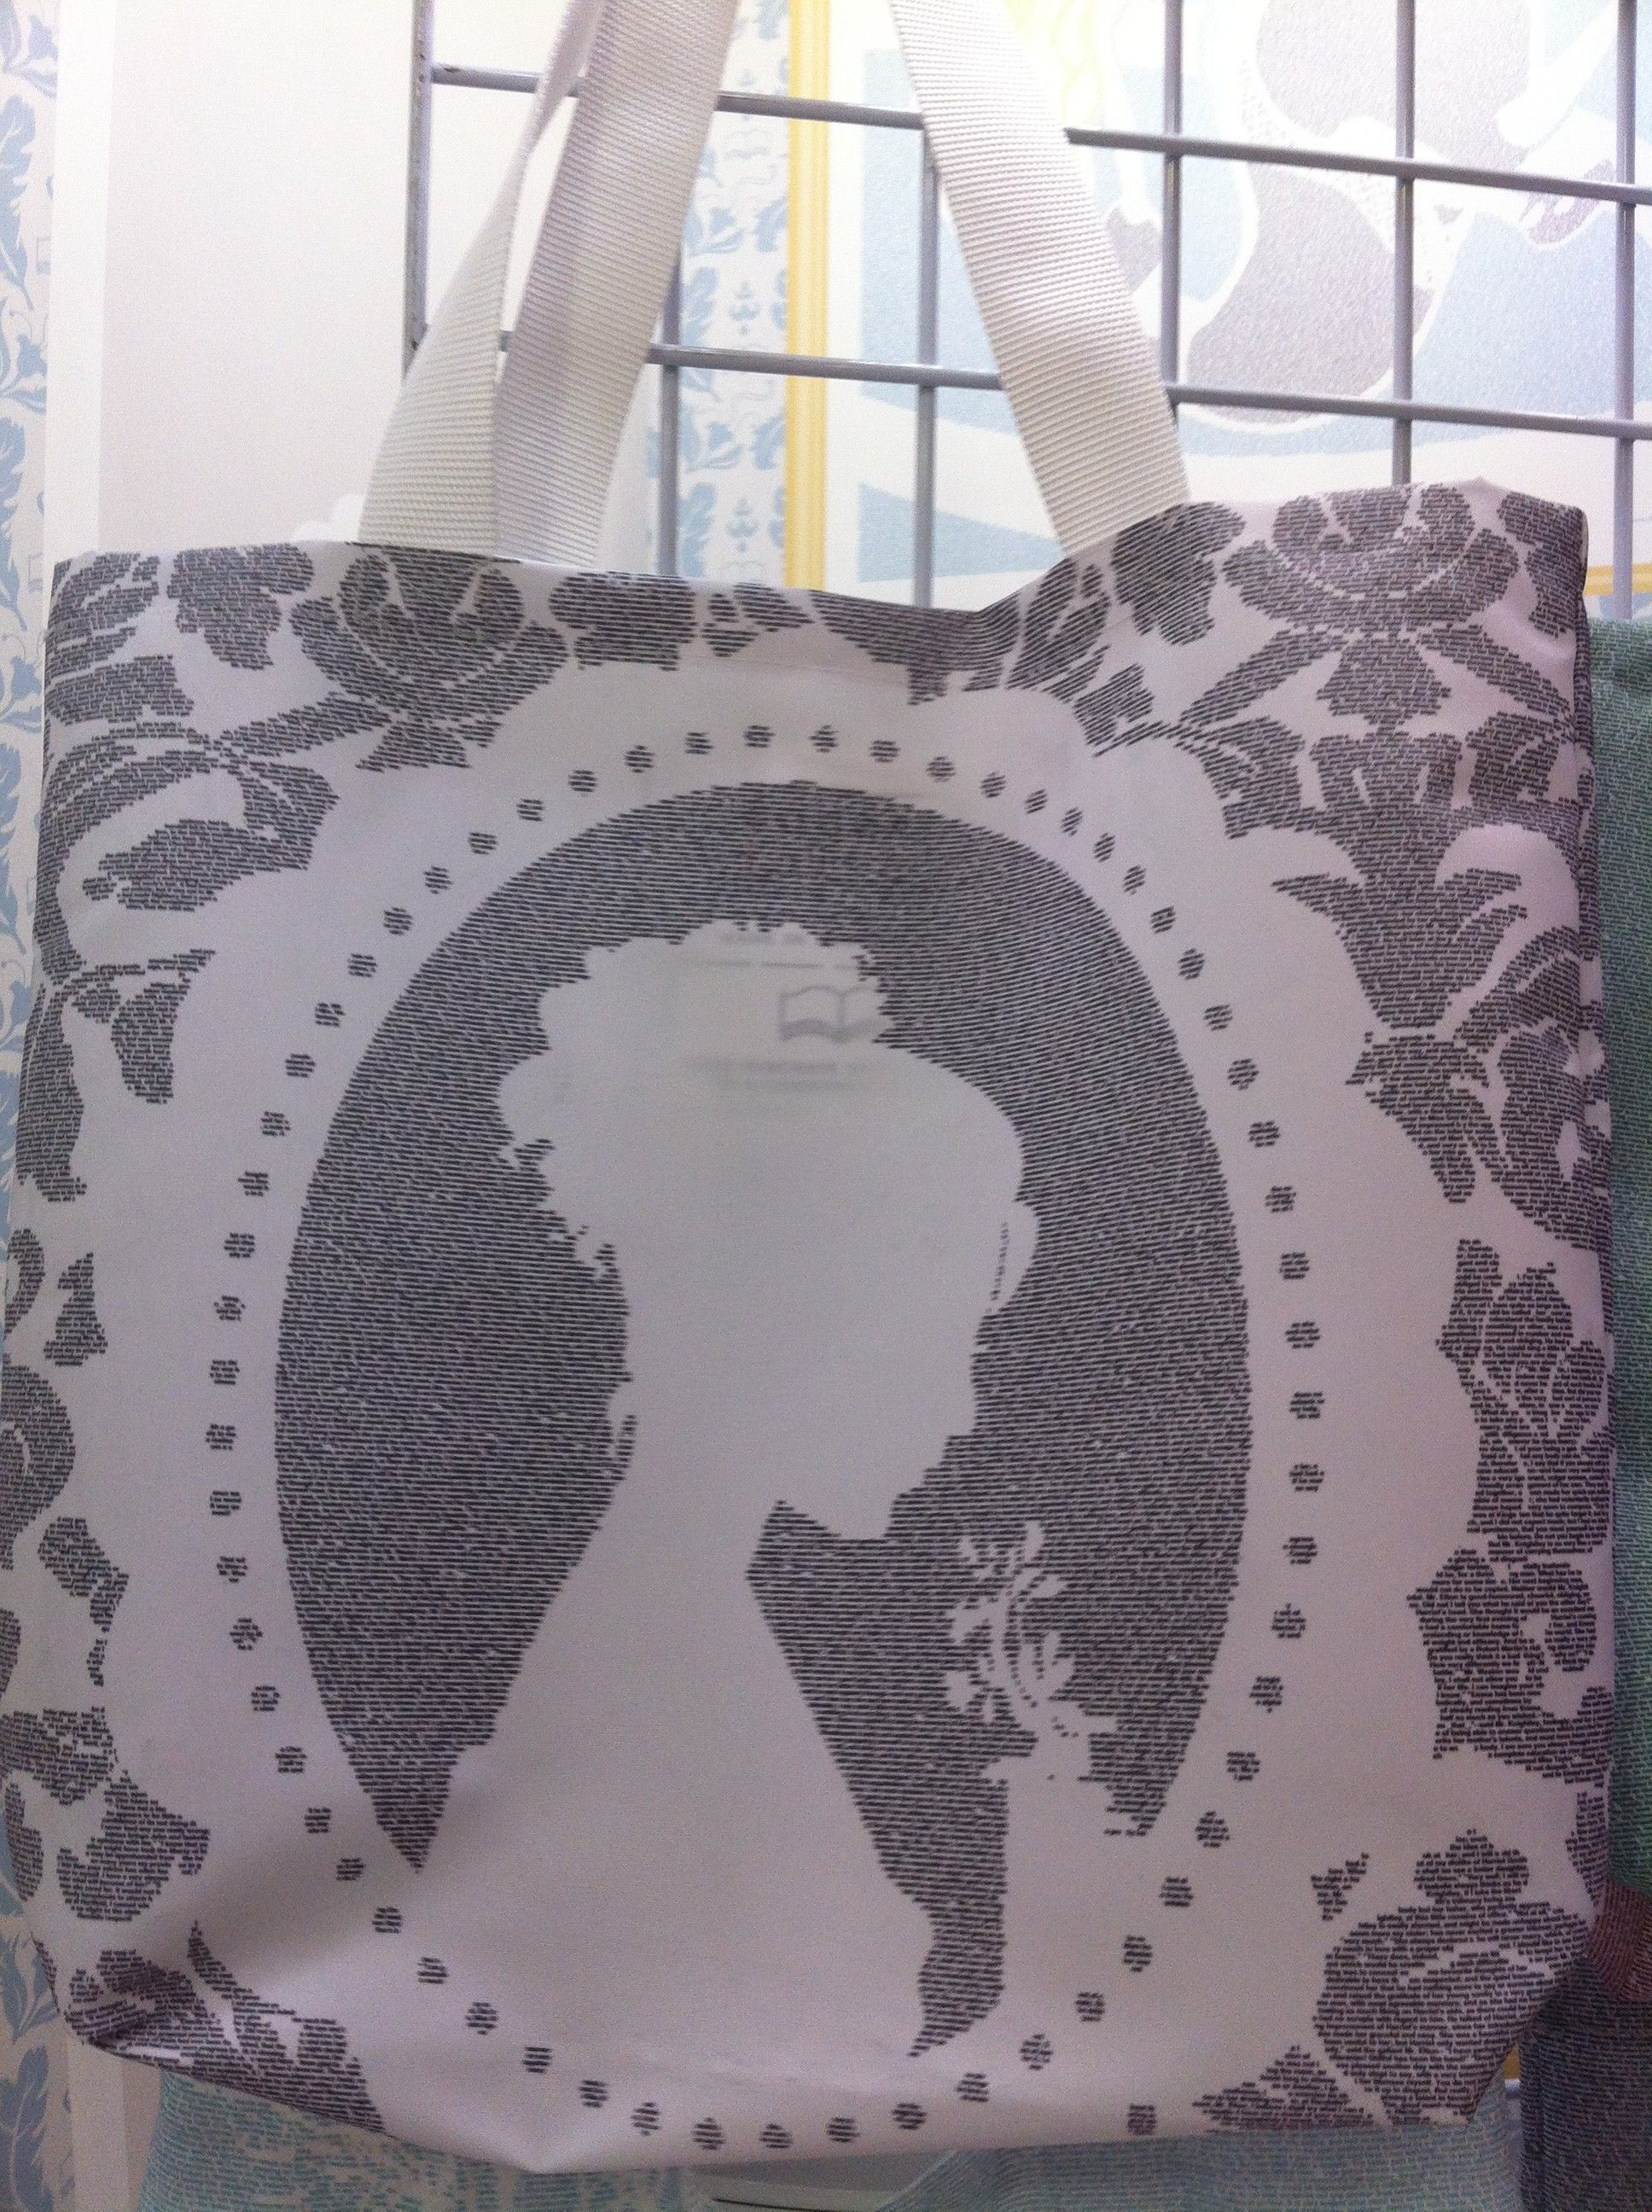 Jane Austen Tote - very cute.